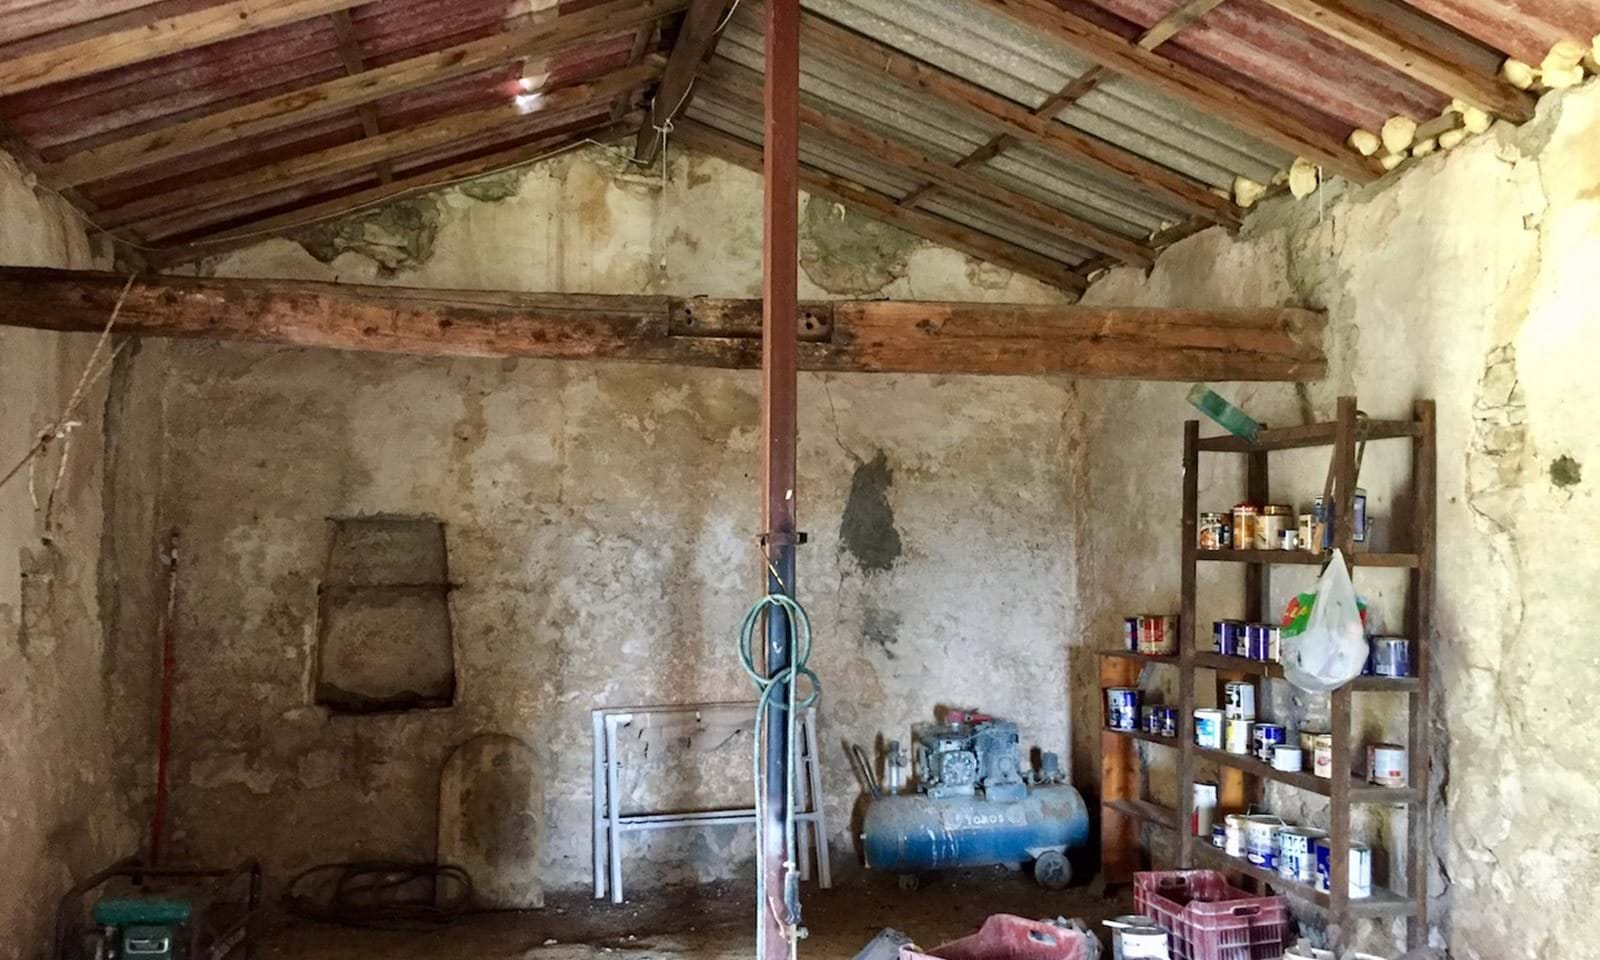 Investment opportunity in Corfu, Renovation project